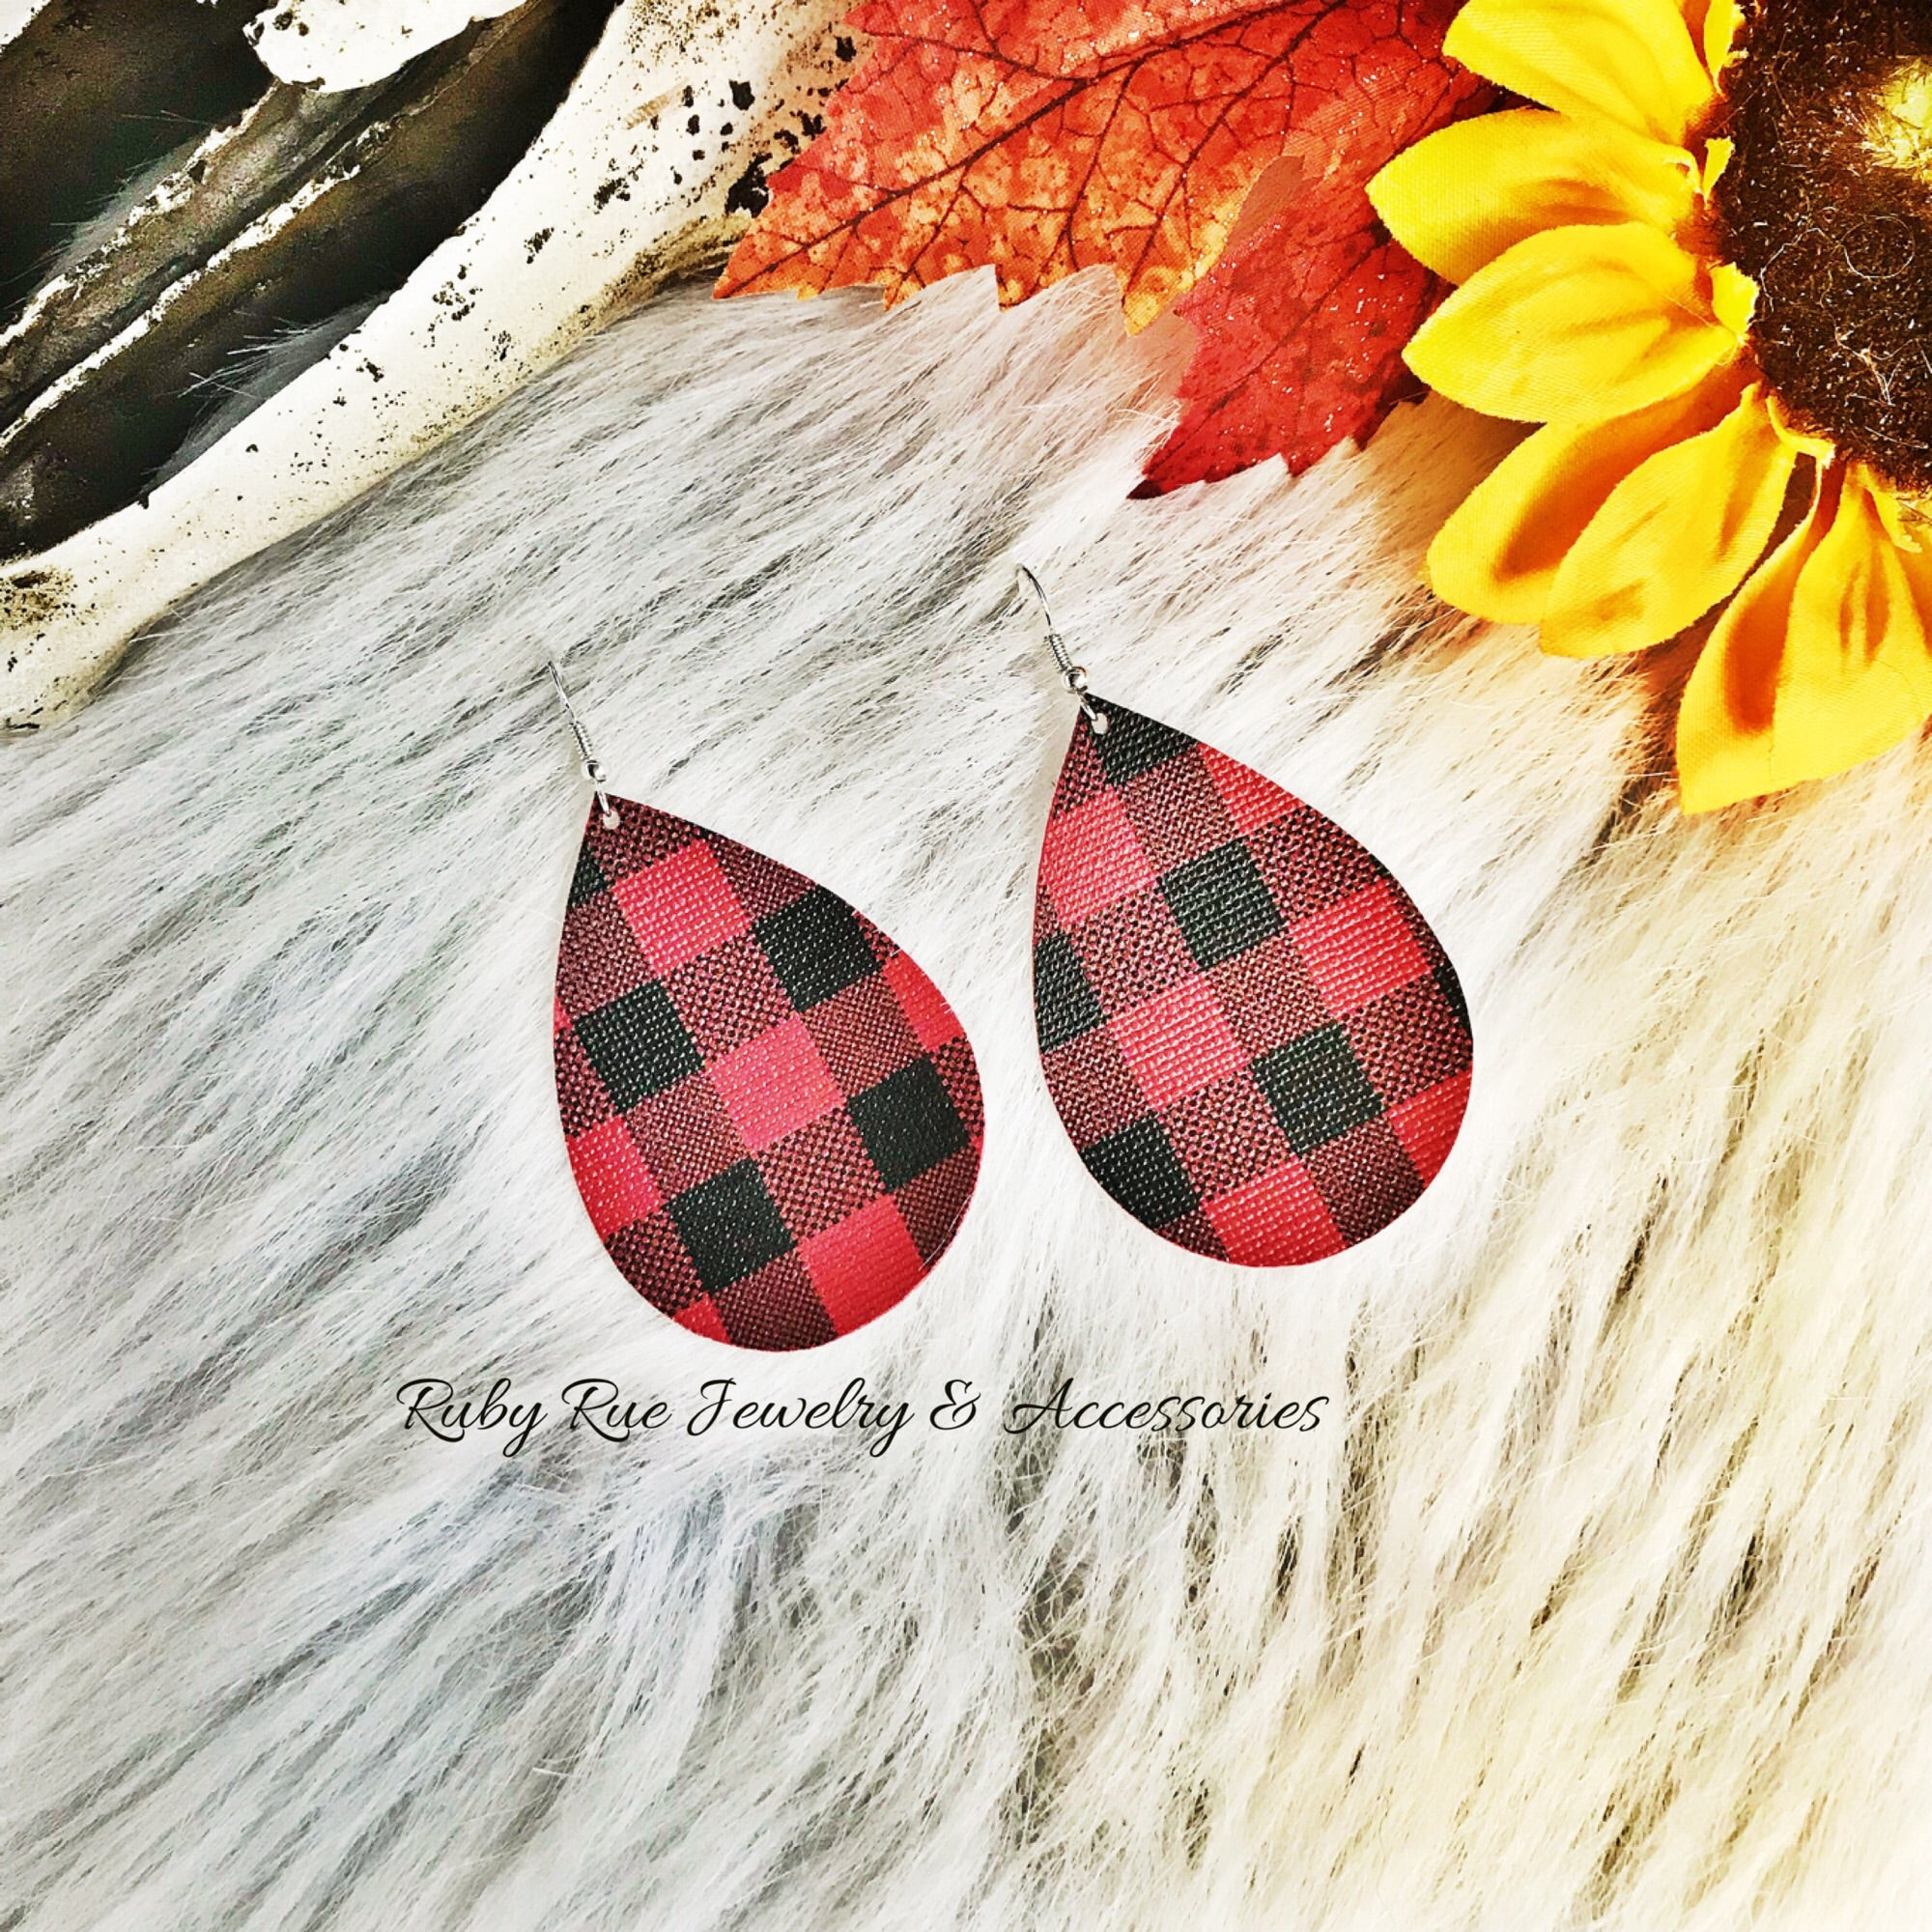 Buffalo Plaid Leather Earrings - Ruby Rue Jewelry & Accessories